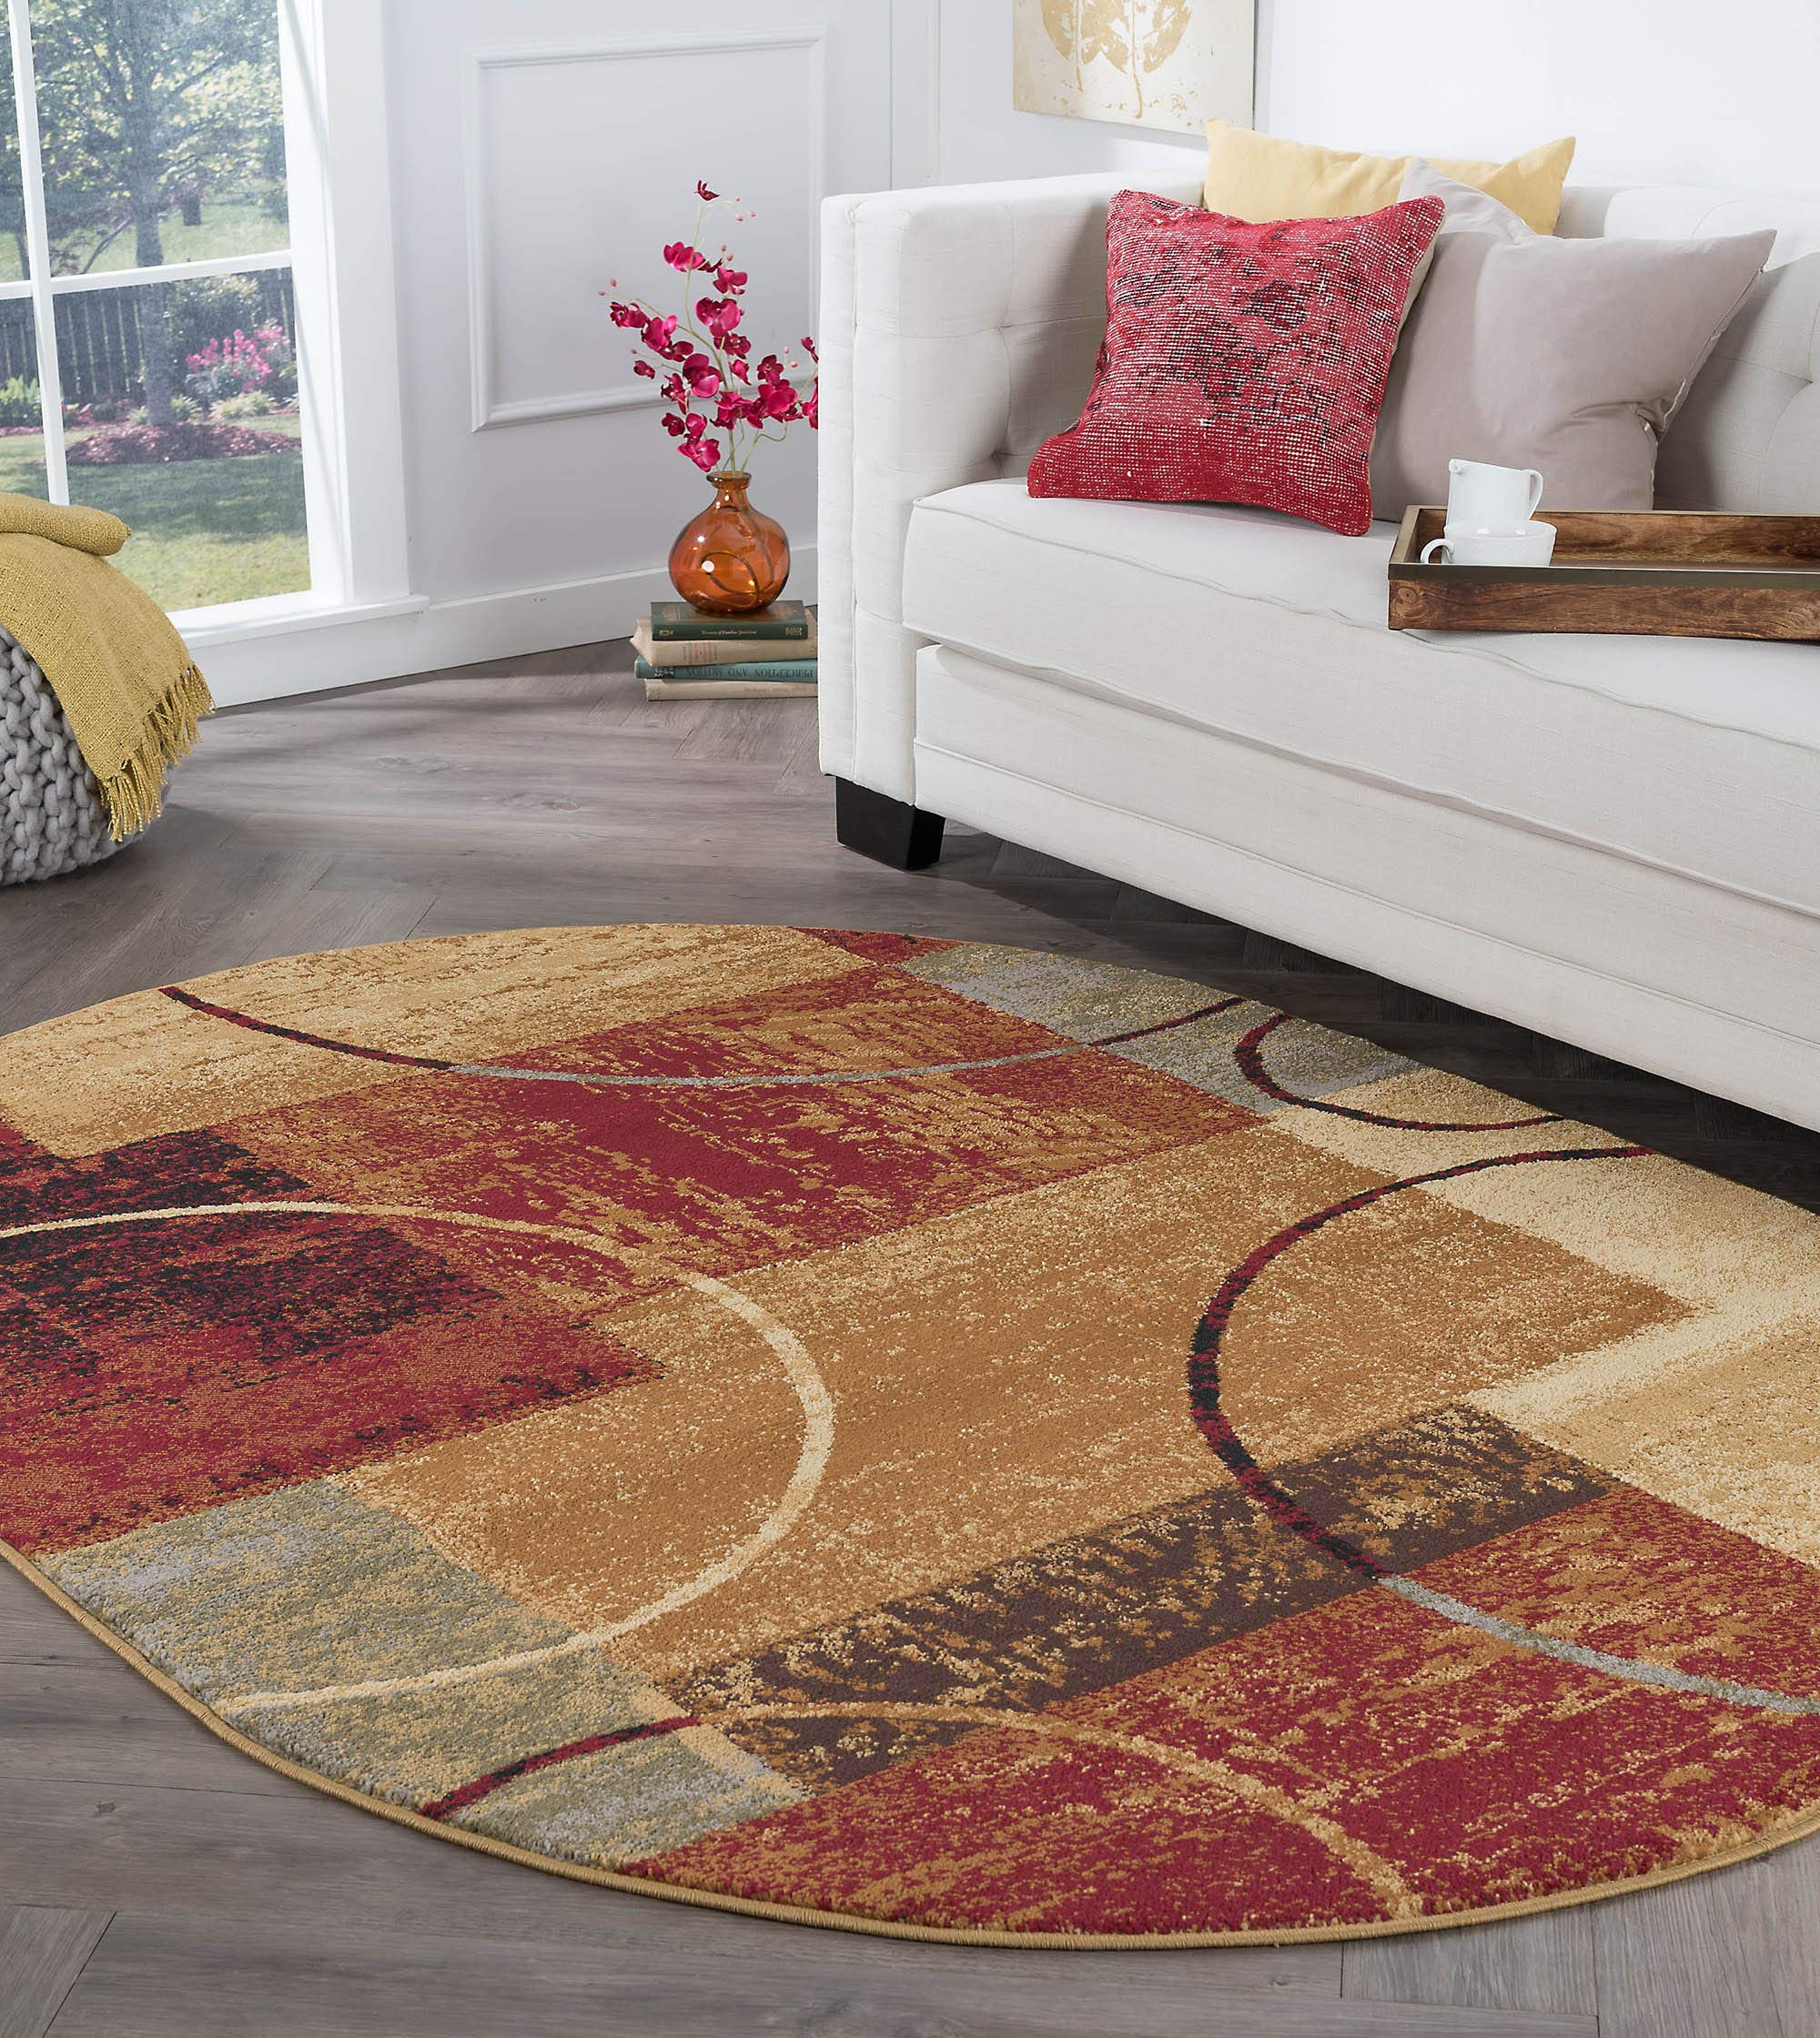 Tacoma Multi-Color 5x8 Oval Area Rug for Living, Bedroom, or Dining Room - Modern, Abstract